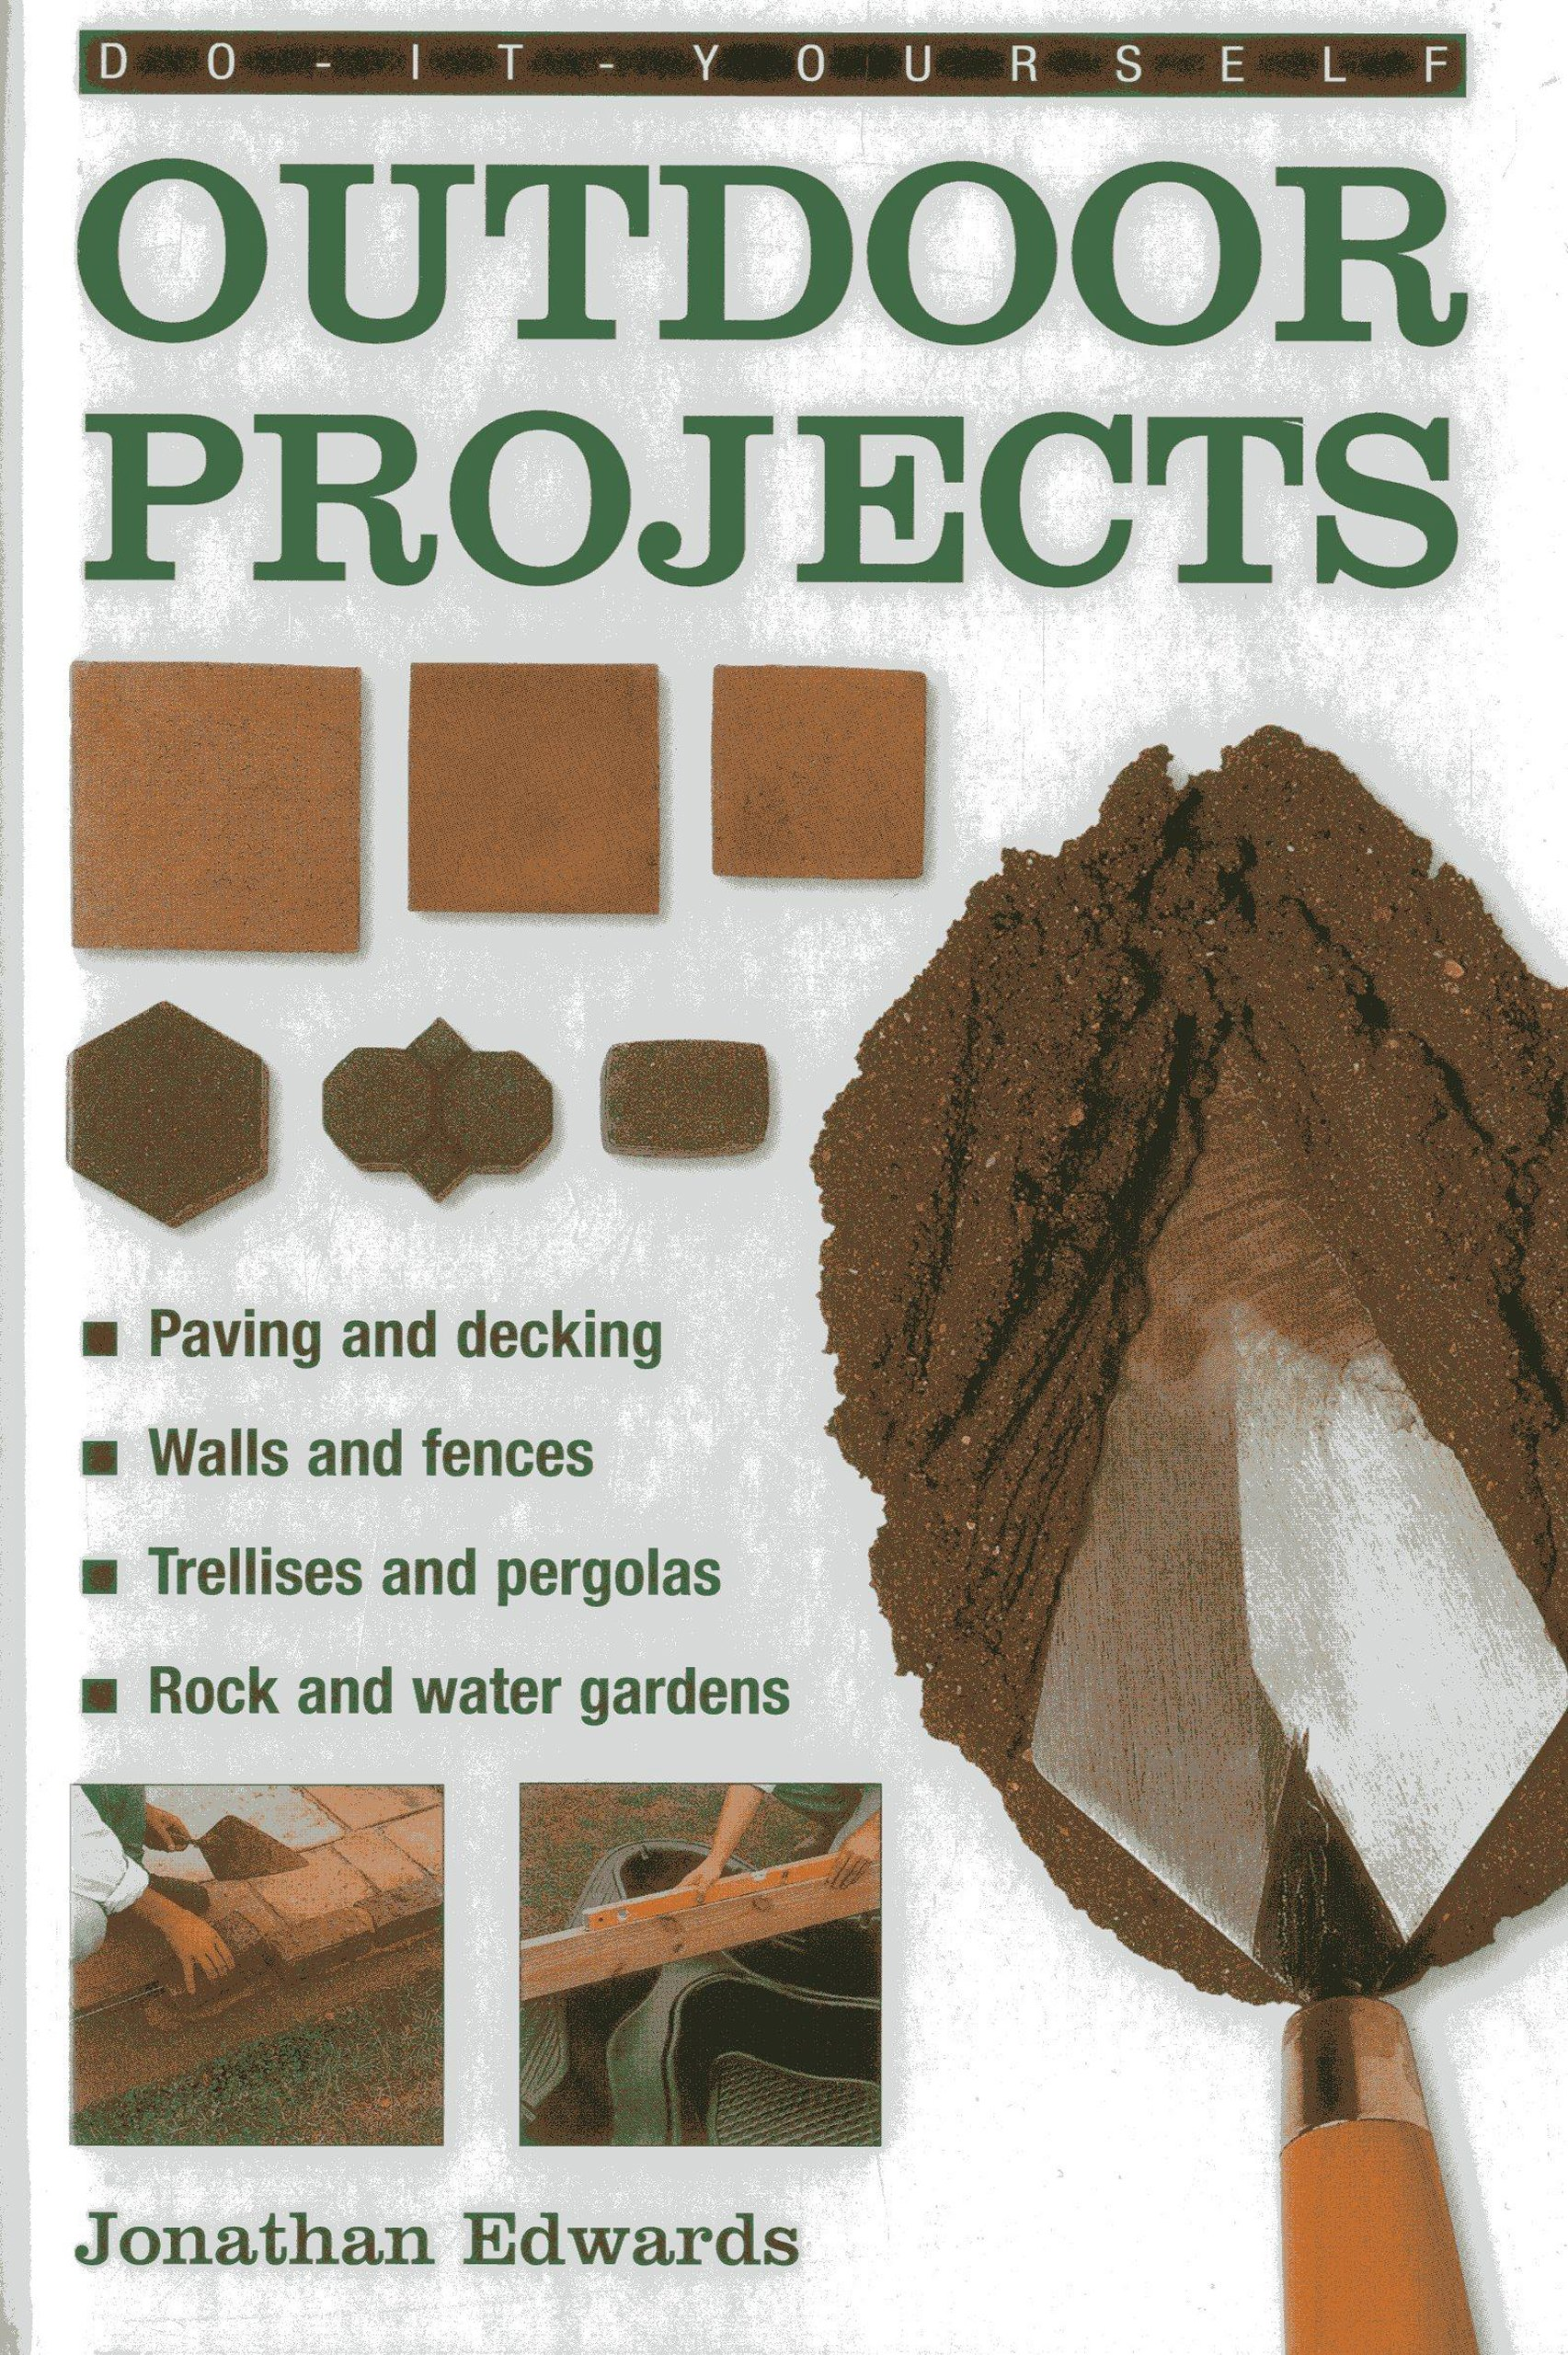 Do-it-yourself Outdoor Projects: Amazon.es: Edwards, Jonathan: Libros en idiomas extranjeros